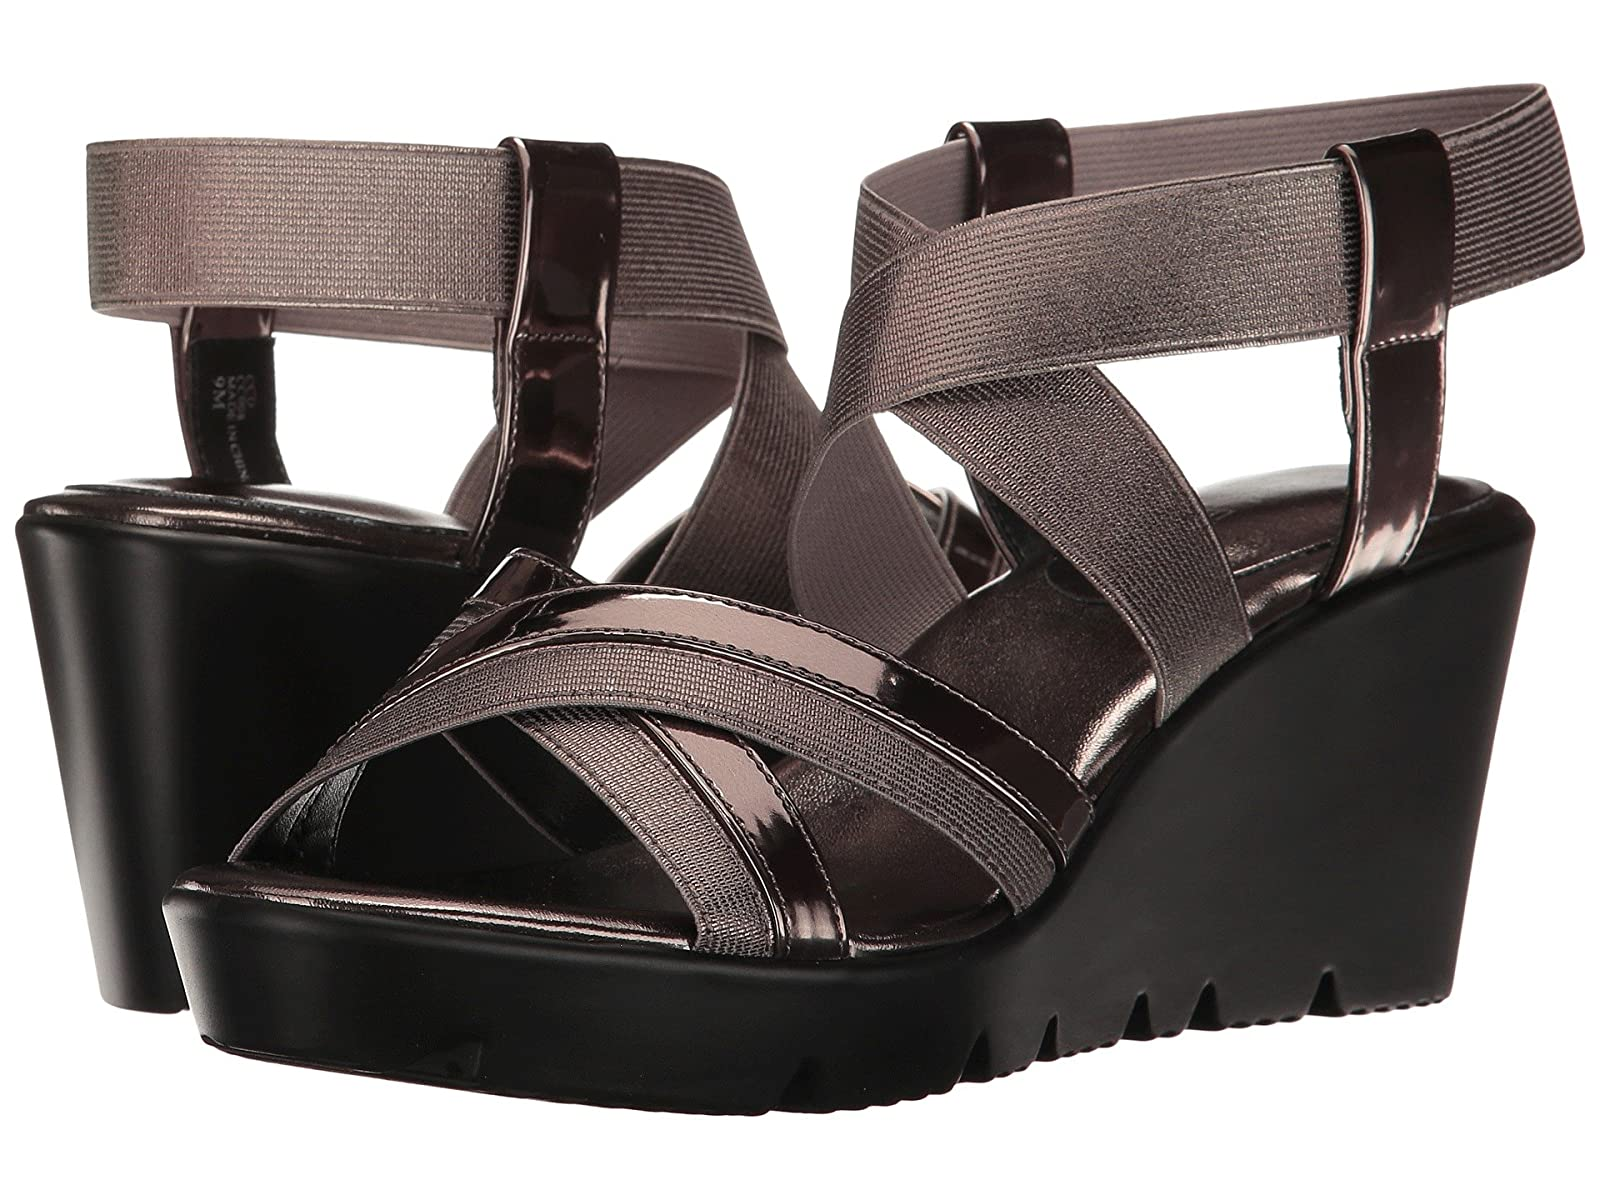 Charles by Charles David VoteCheap and distinctive eye-catching shoes